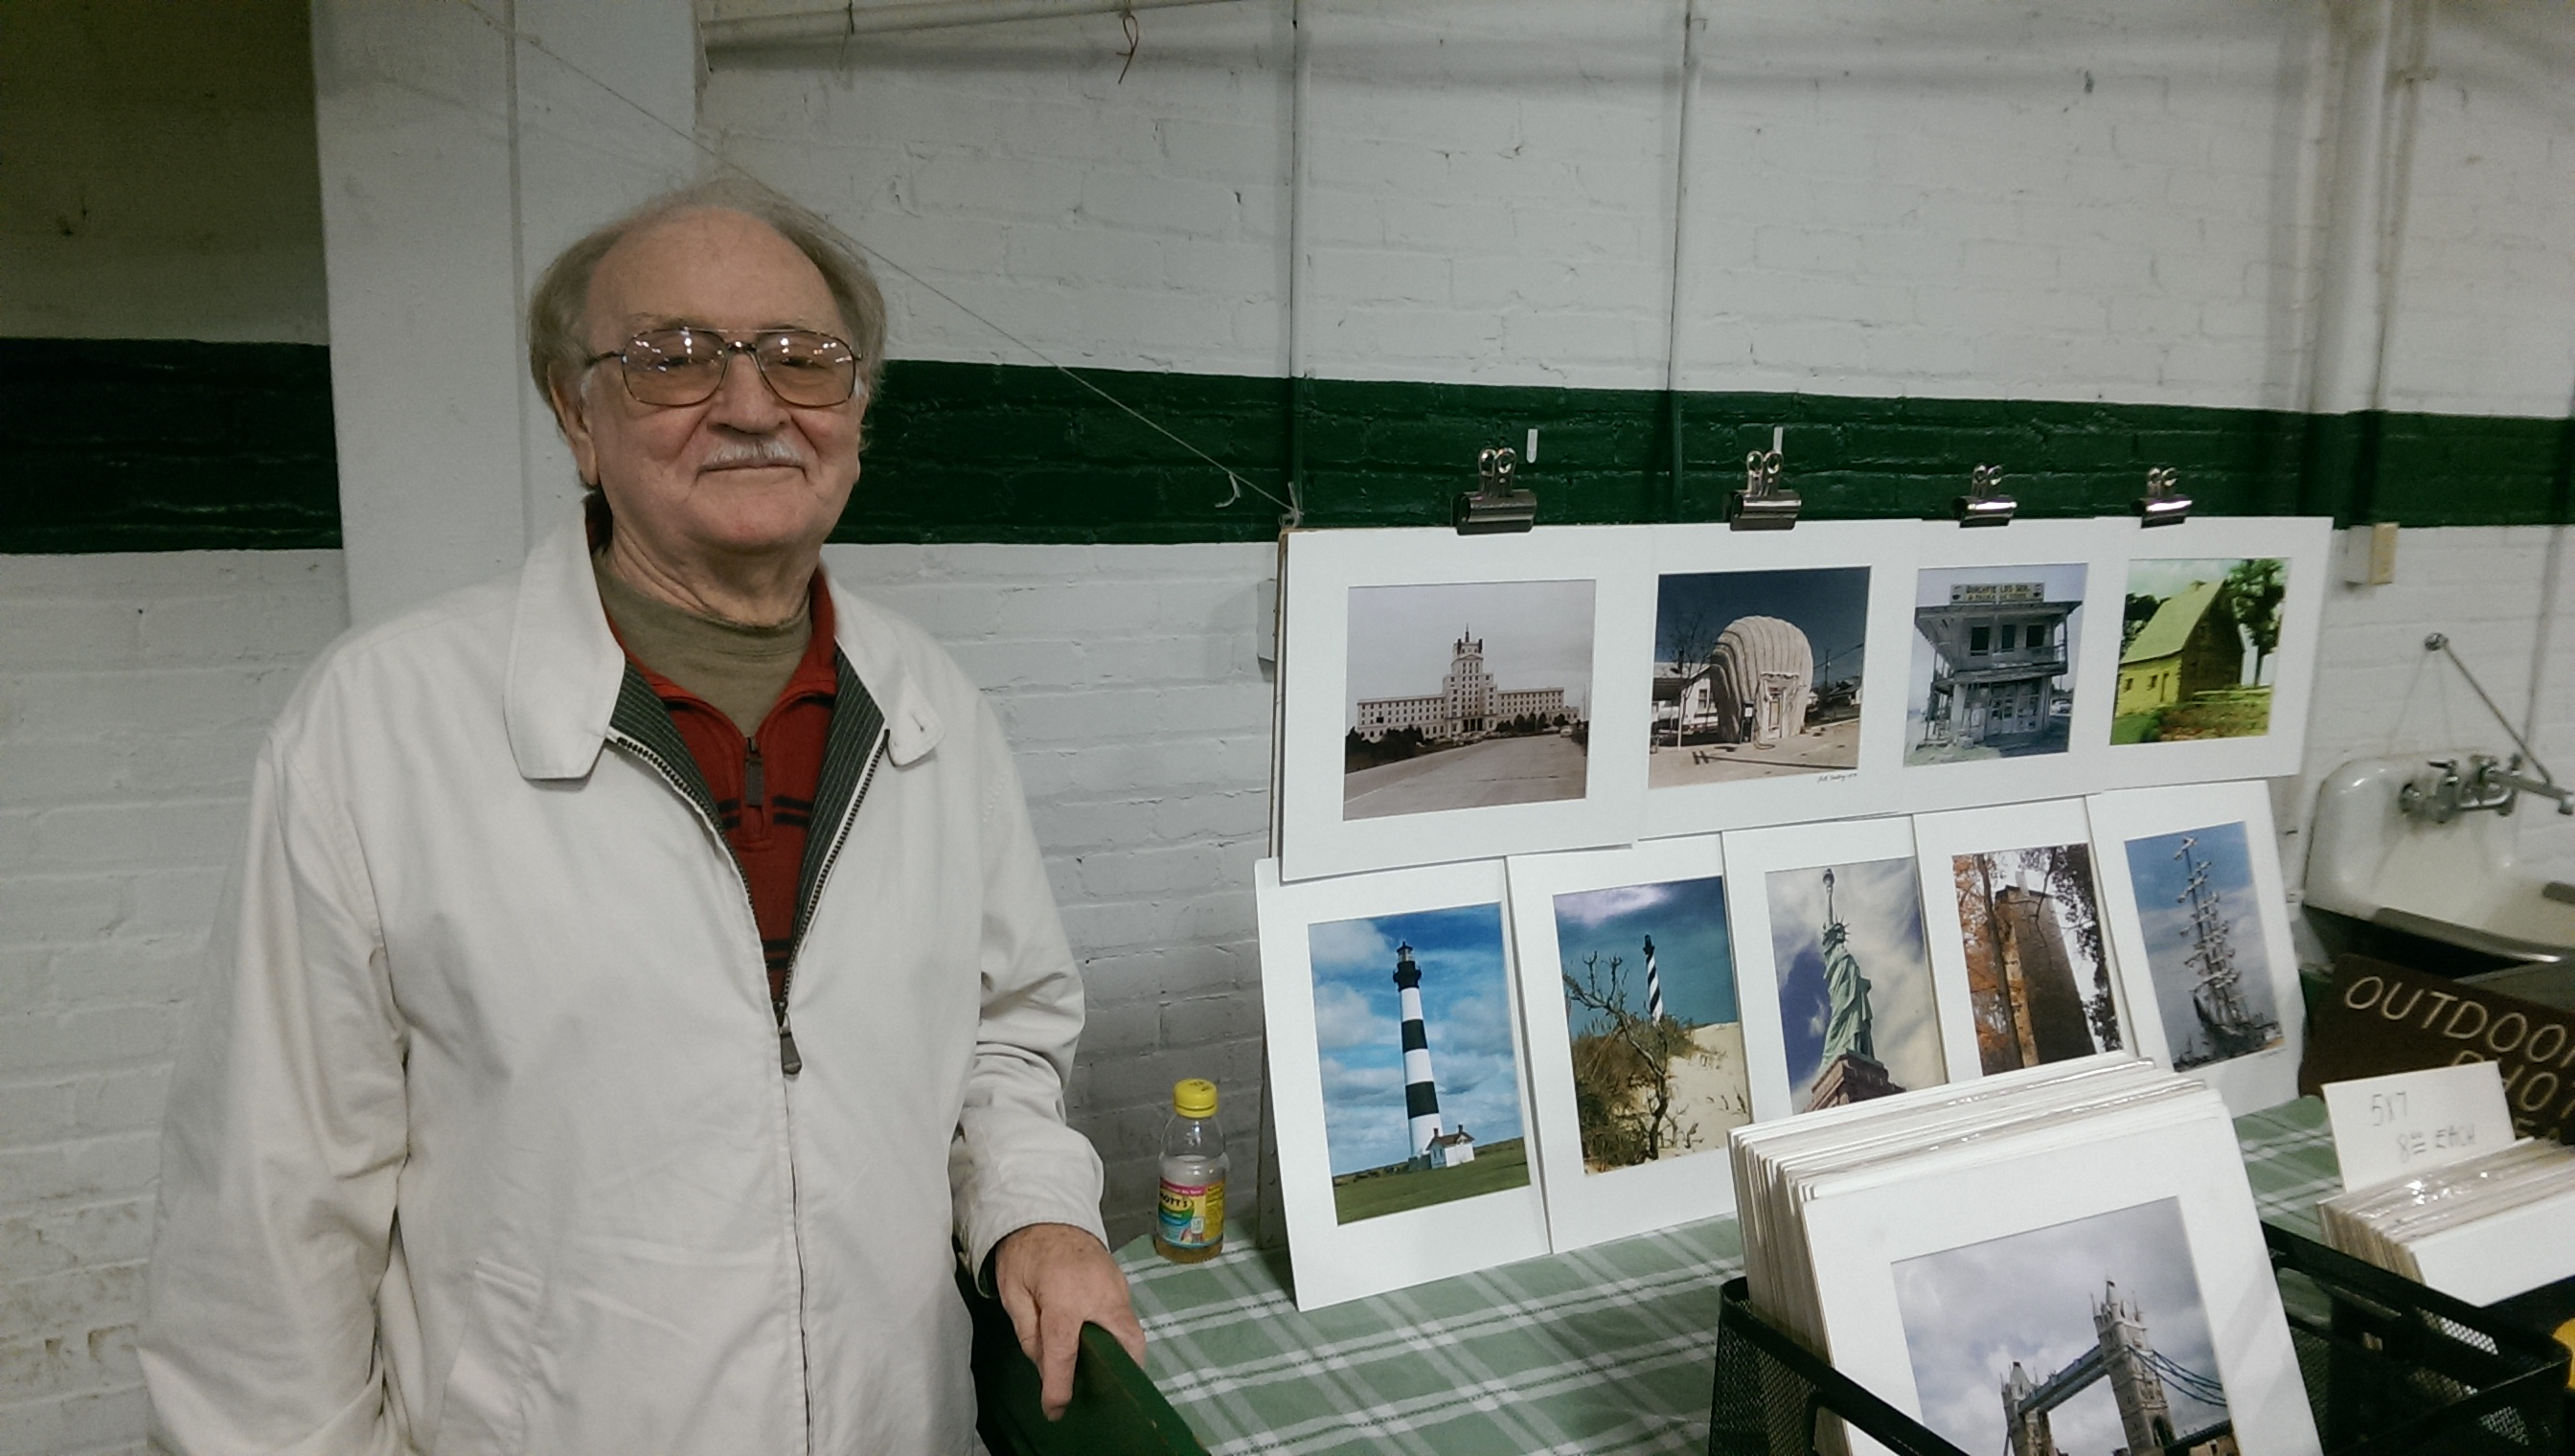 Meet Your Vendor: Bill Farthing